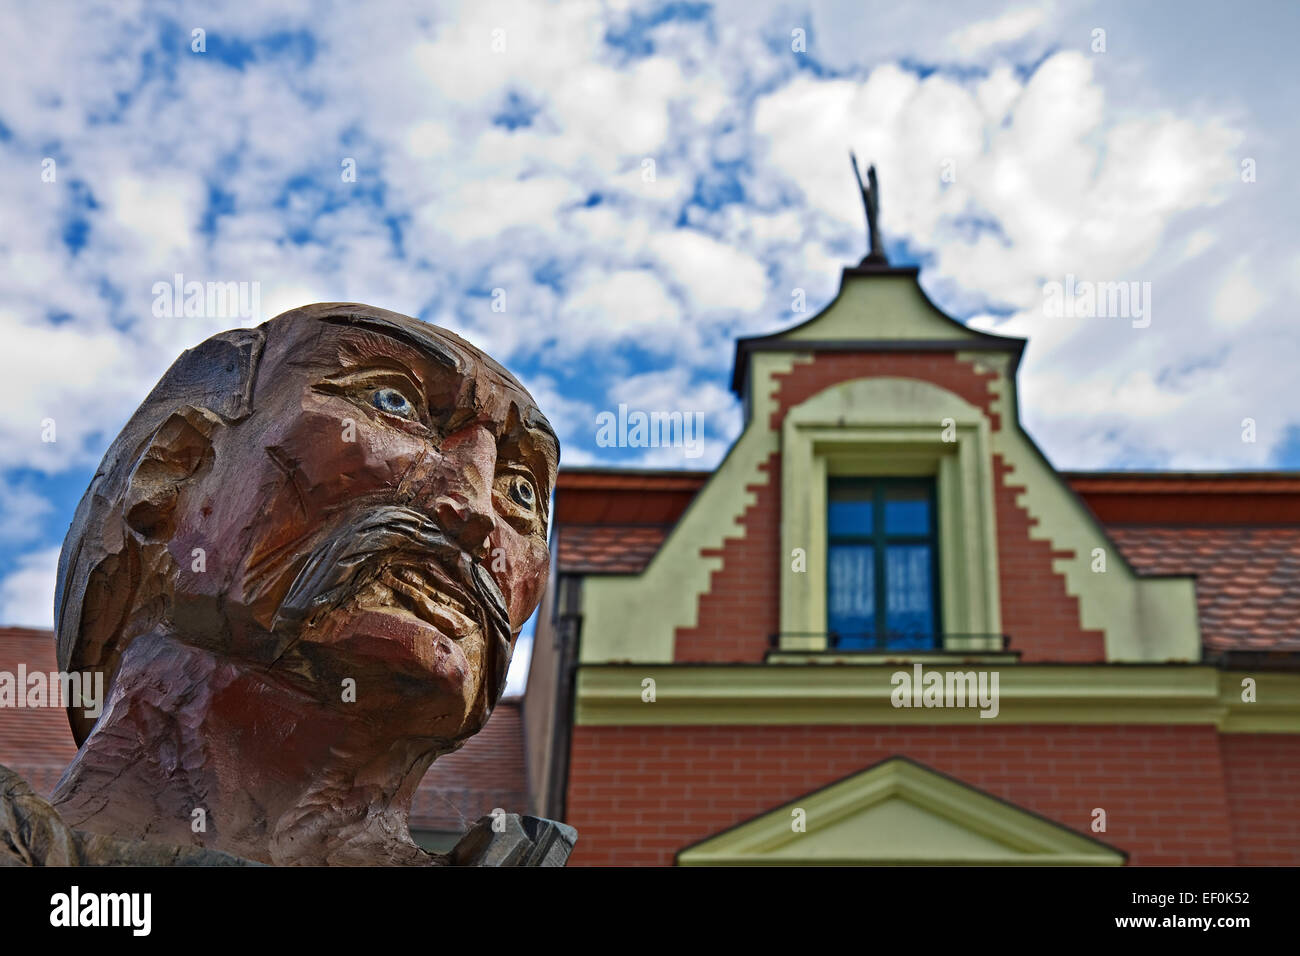 A wooden figure in front of a house gable. - Stock Image